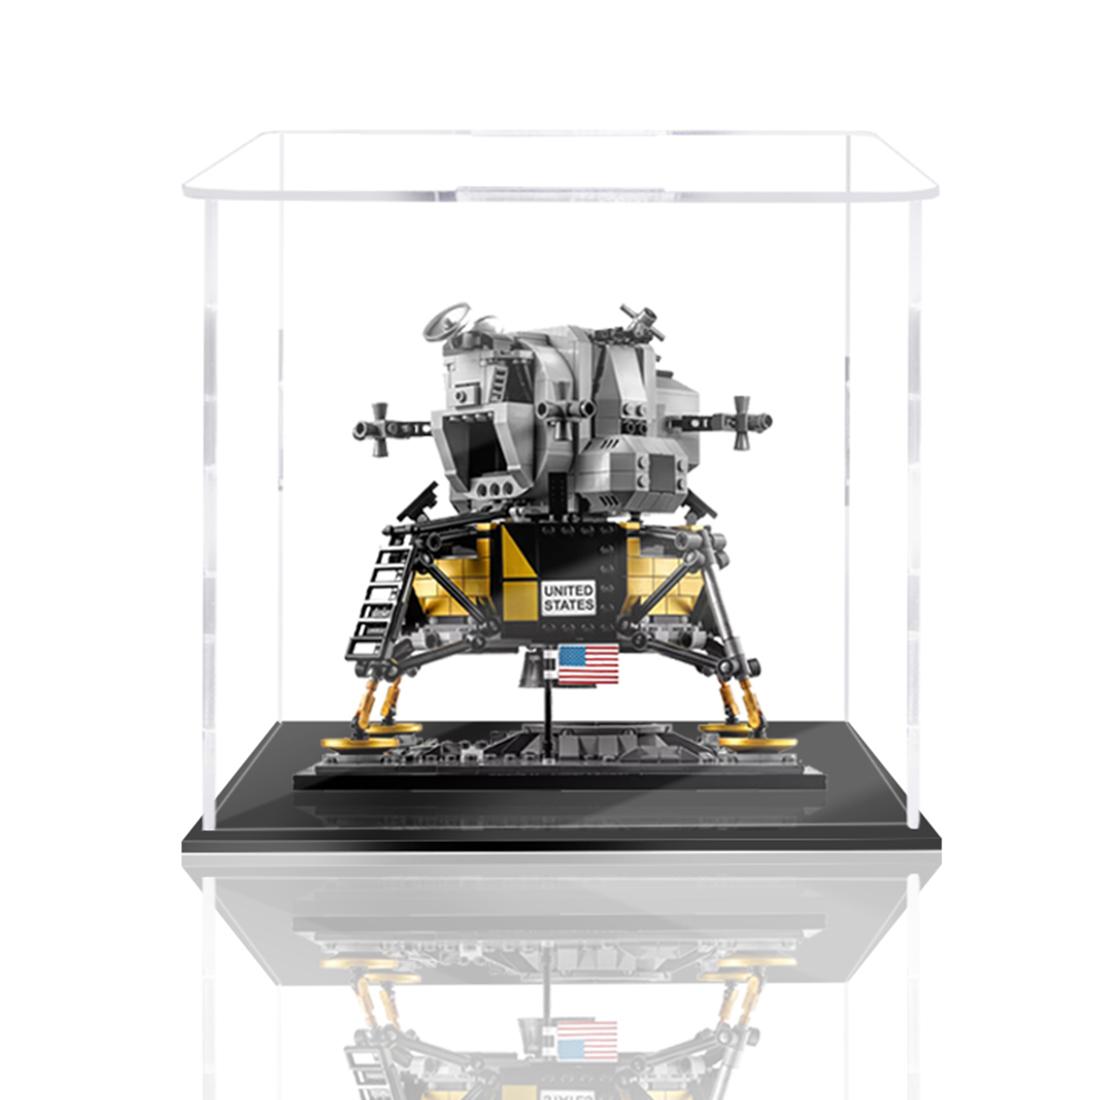 Building Block Acrylic Dustproof Display Box For Apollo No.11 Lunar Module 10266 (Box Only, No Kit)- 2mm/3mm Thickness Bottom